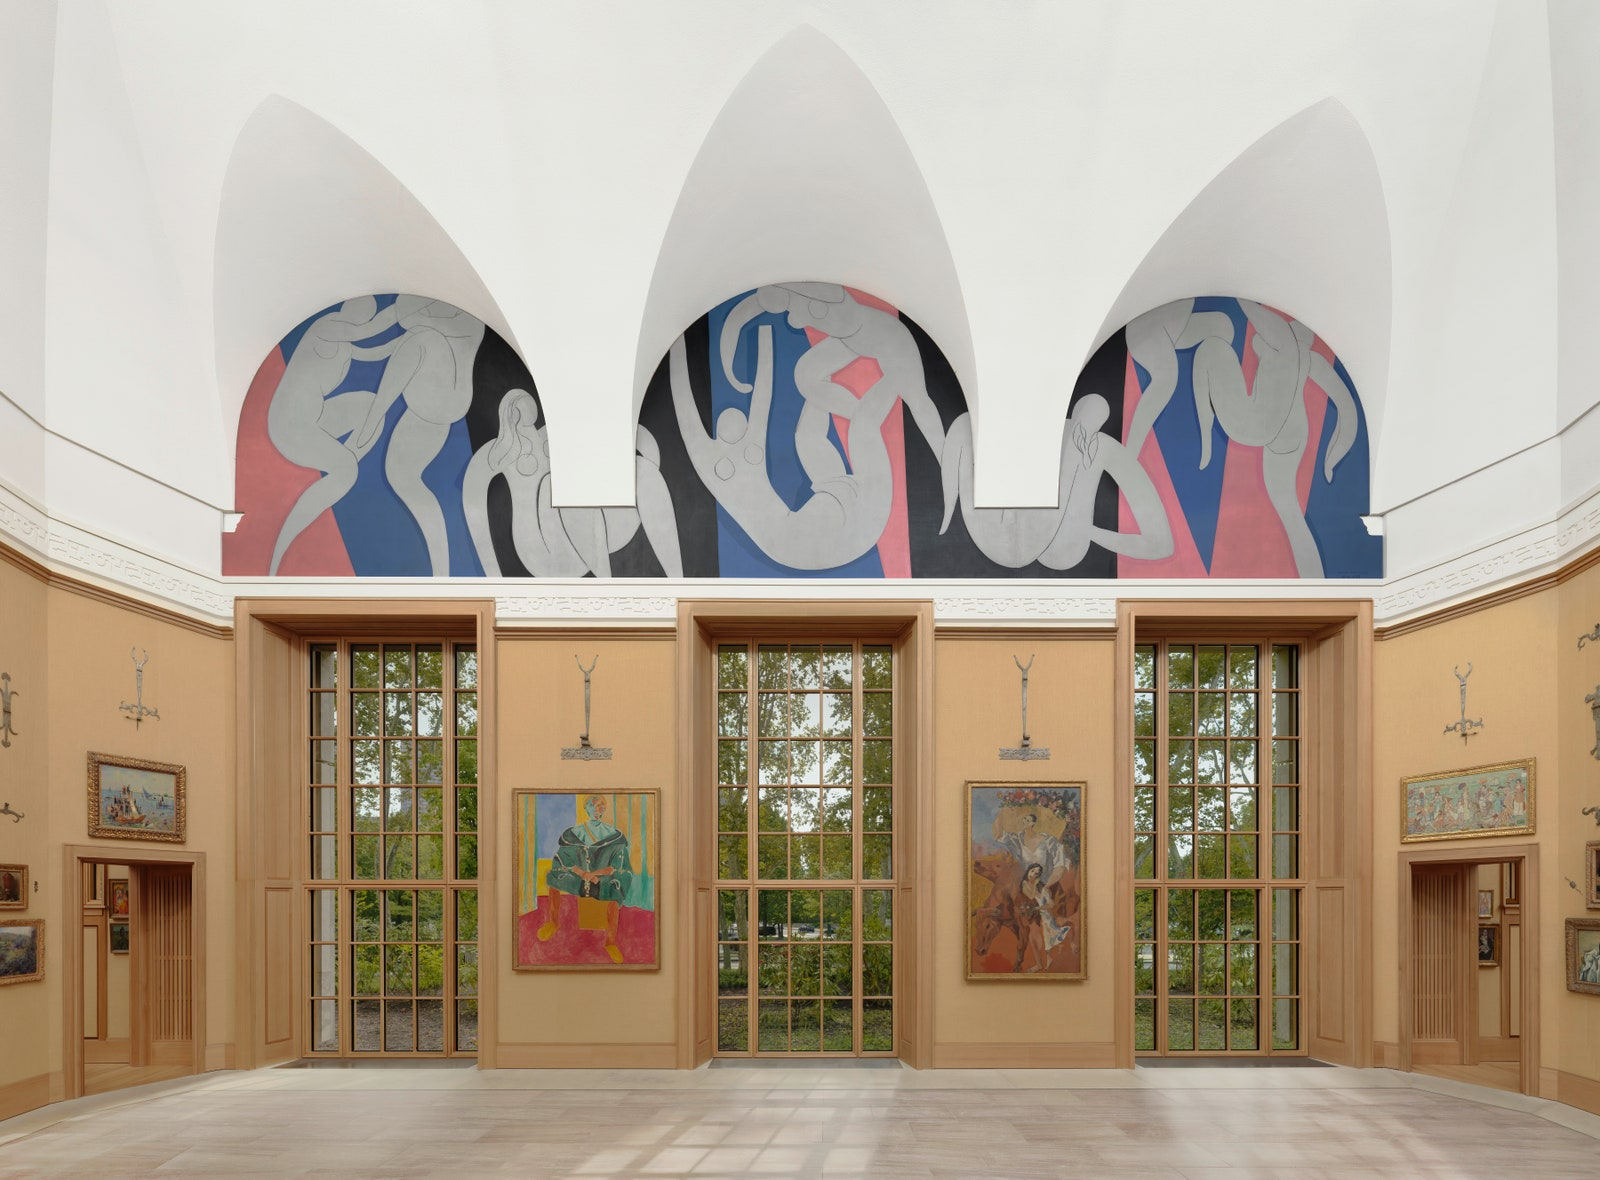 The Dance II, 1932, mural at the Barnes Foundation, Philadelphia, image via Architectural Digest